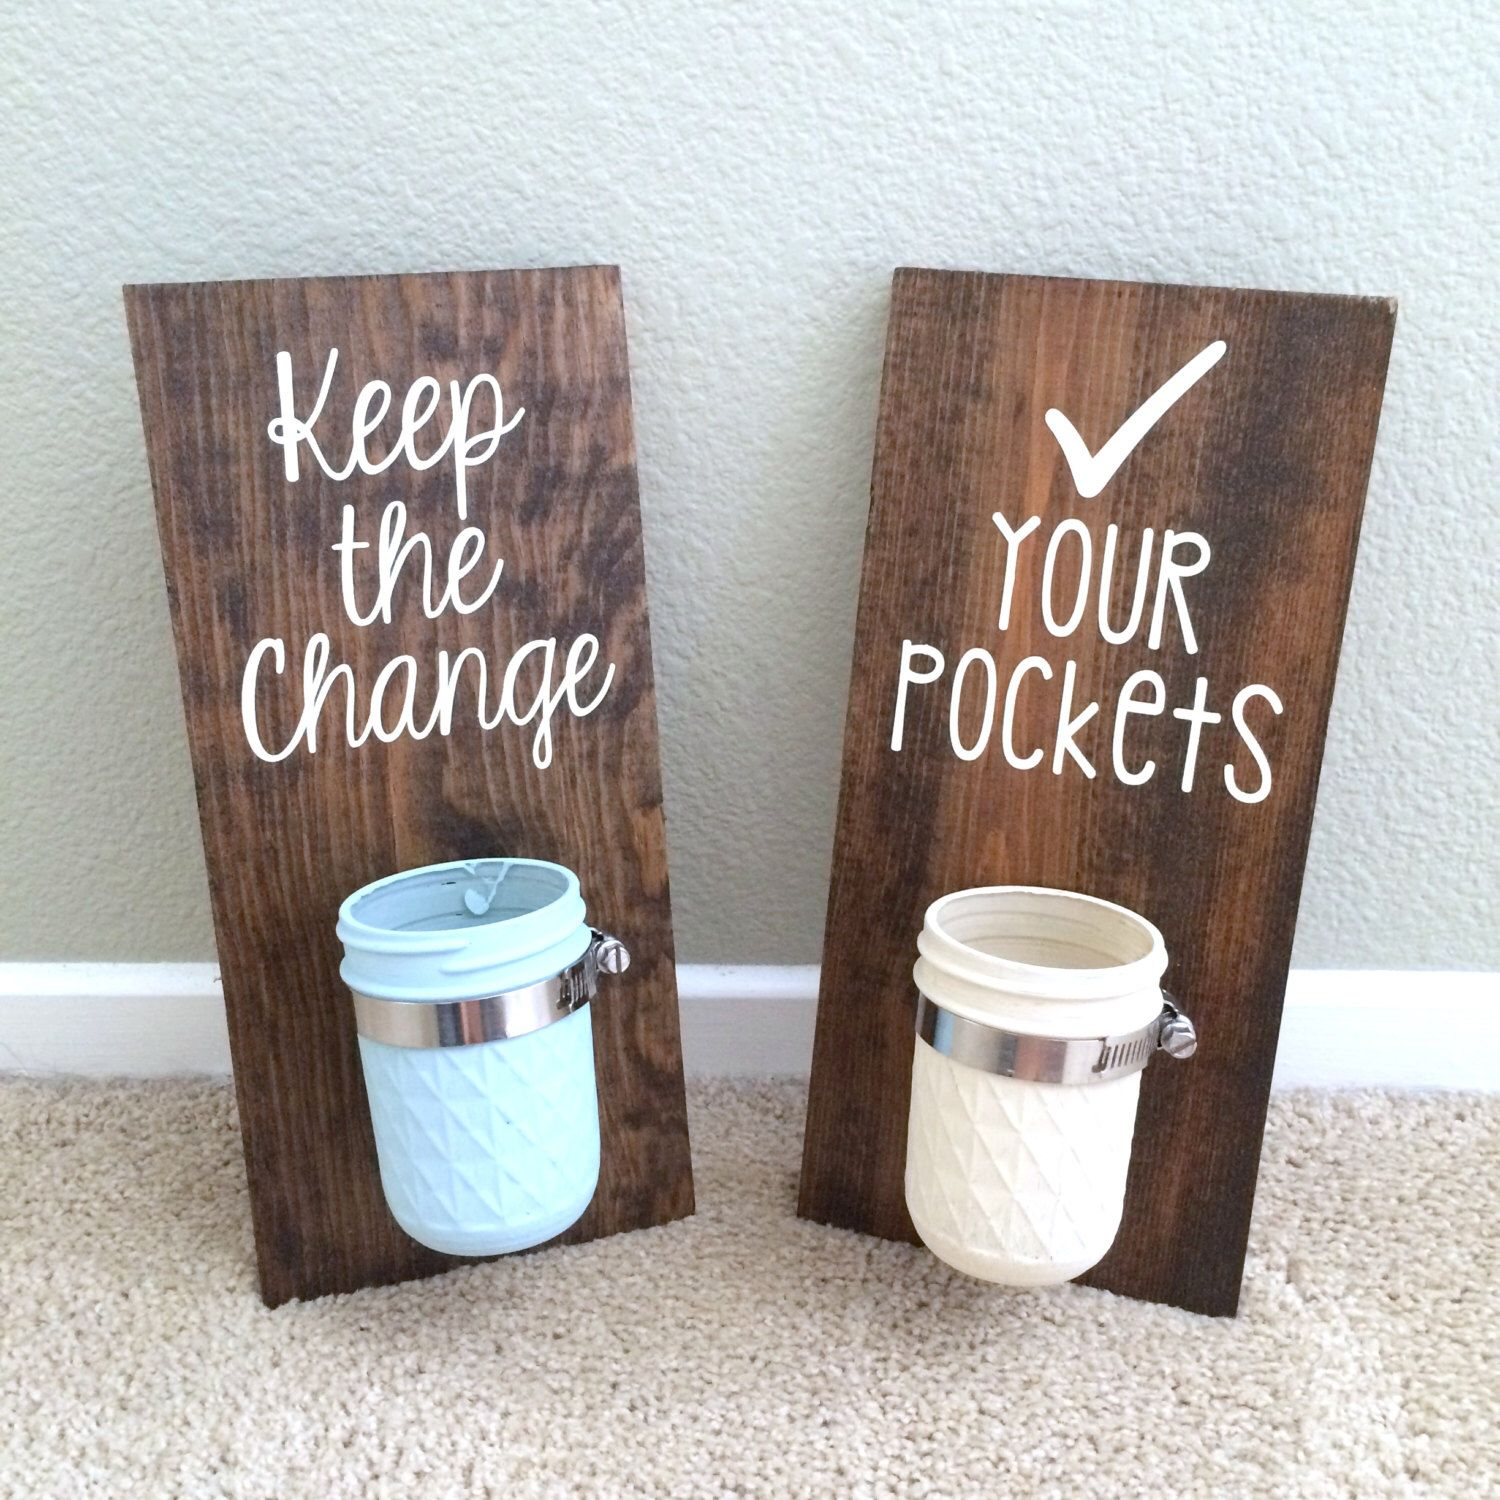 Laundry Room Accessories Decor: Laundry Room Sign,Laundry Room Decor,Keep The Change,Check